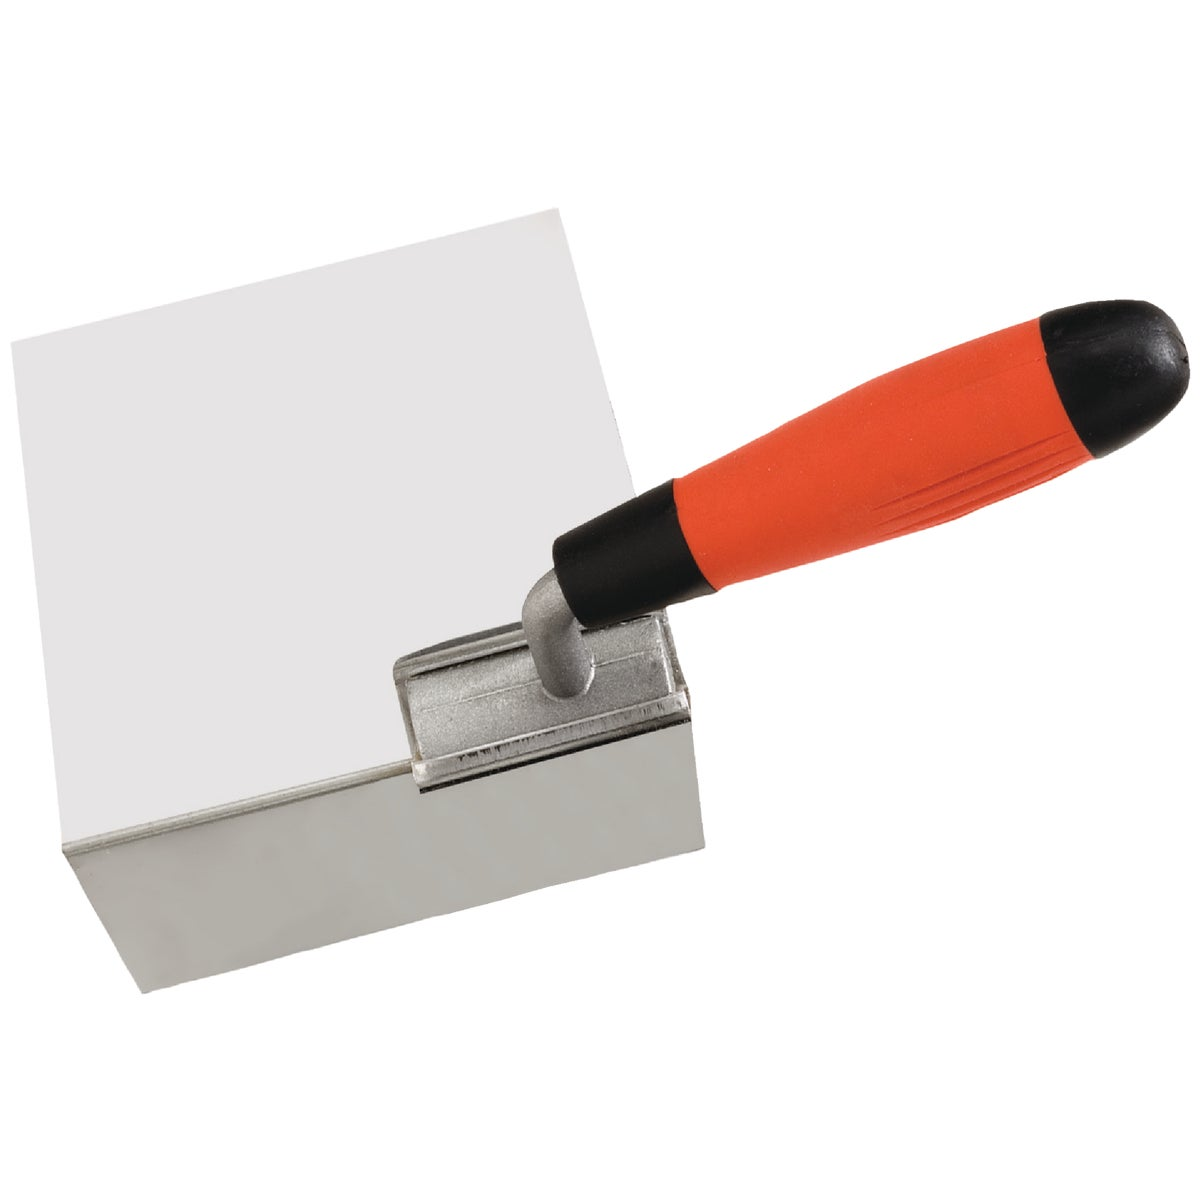 OUTSIDE CORNER TROWEL - 322831 by Do it Best